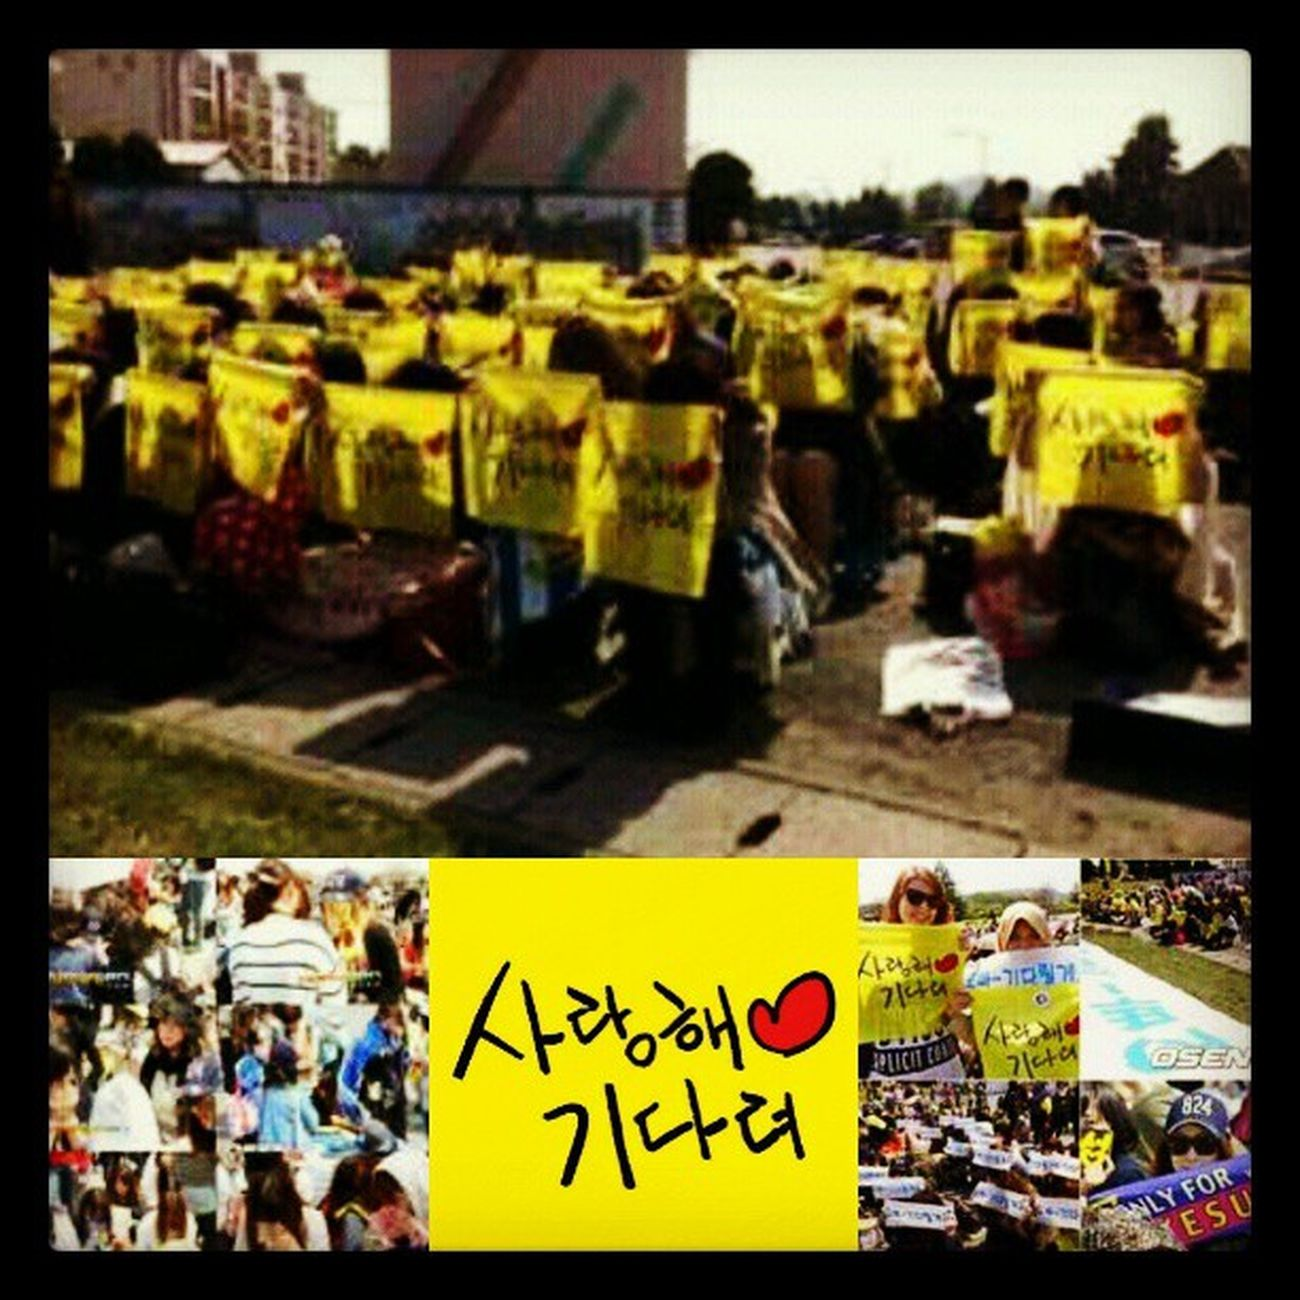 He's gone :'''''''' So many elfs in Jeonjo to waiting for him :''') crying,huging .See you 2years again Kim Jong Woon TT_______TT KIMJONGWOON Today 6may13 Enlistment army waitingforyesung elf crying sad :'''''''''''''(